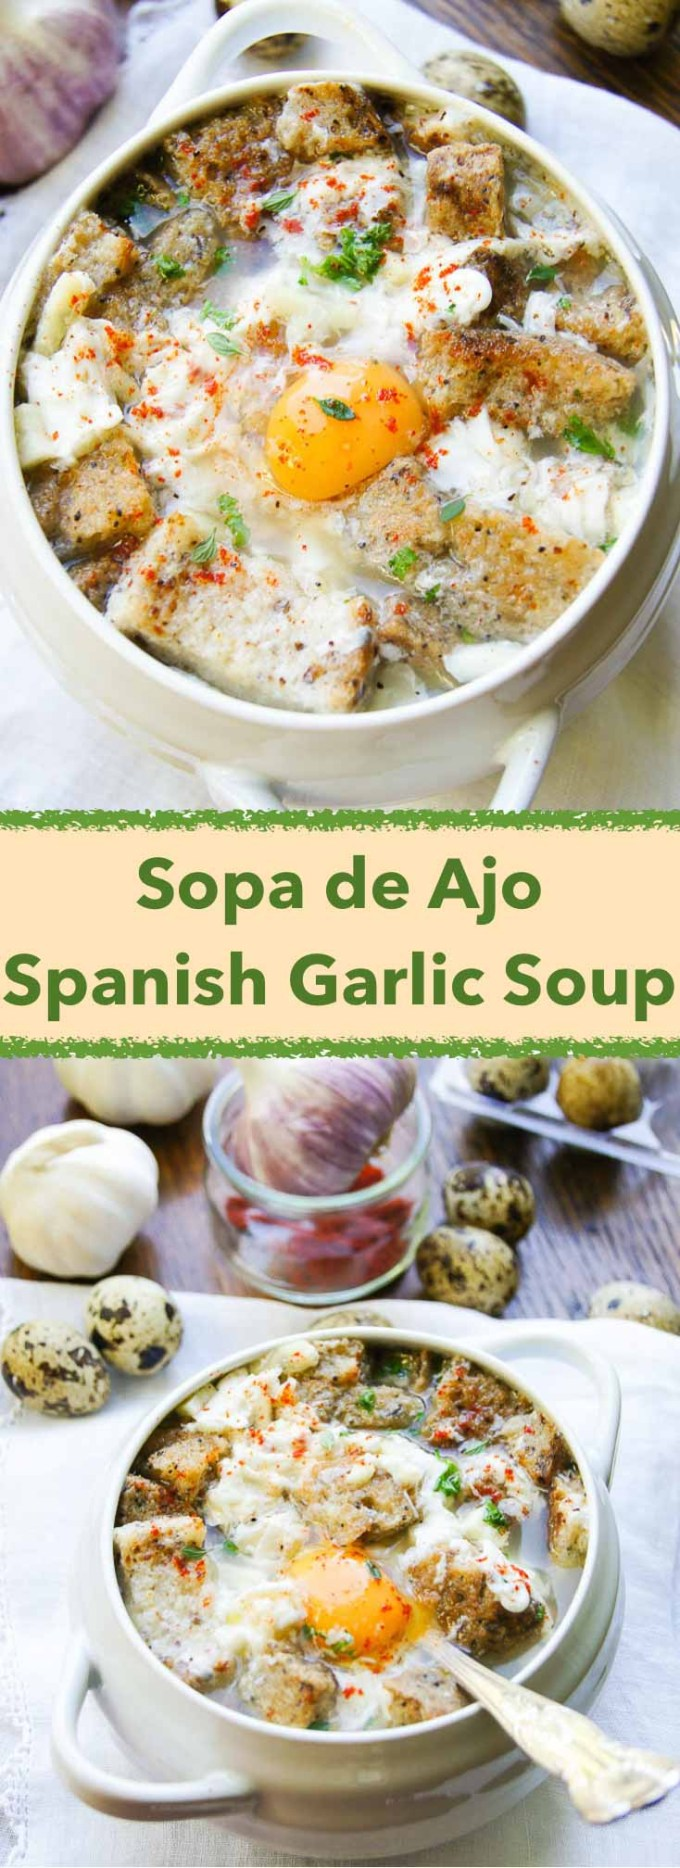 Born as a peasant dish, traditional Sopa De Ajo - Spanish Garlic & Bread Soup - impresses with its aroma, comfort & cold curing qualities. Tasty, easy & healthy.